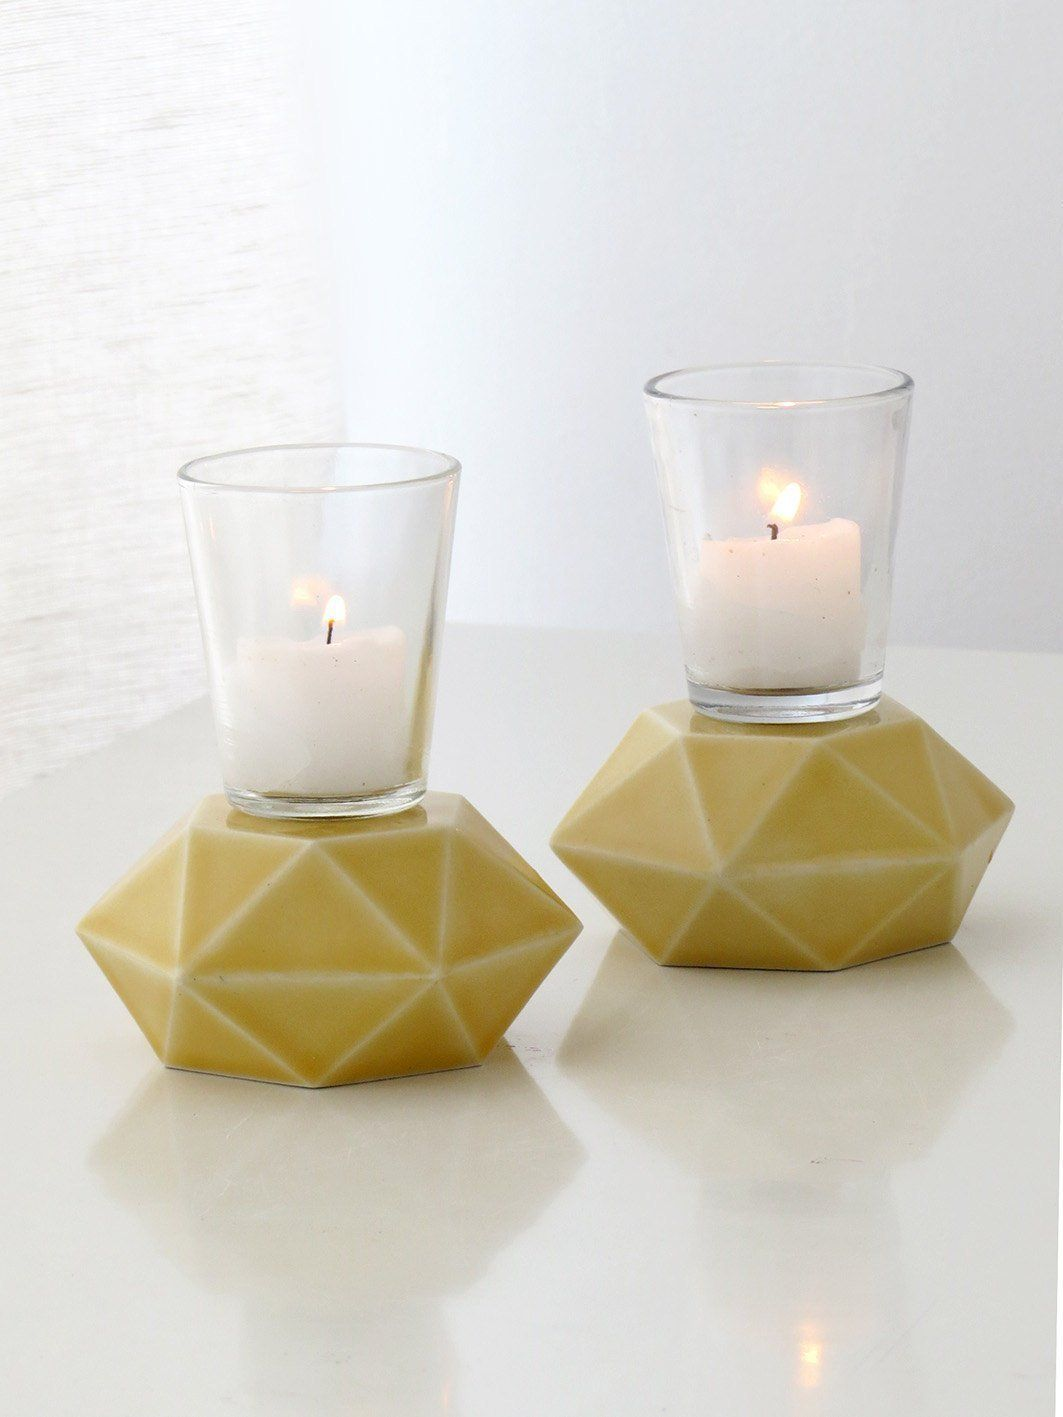 Handmade yellow candlesticks pair of hexagon ceramic candle holders